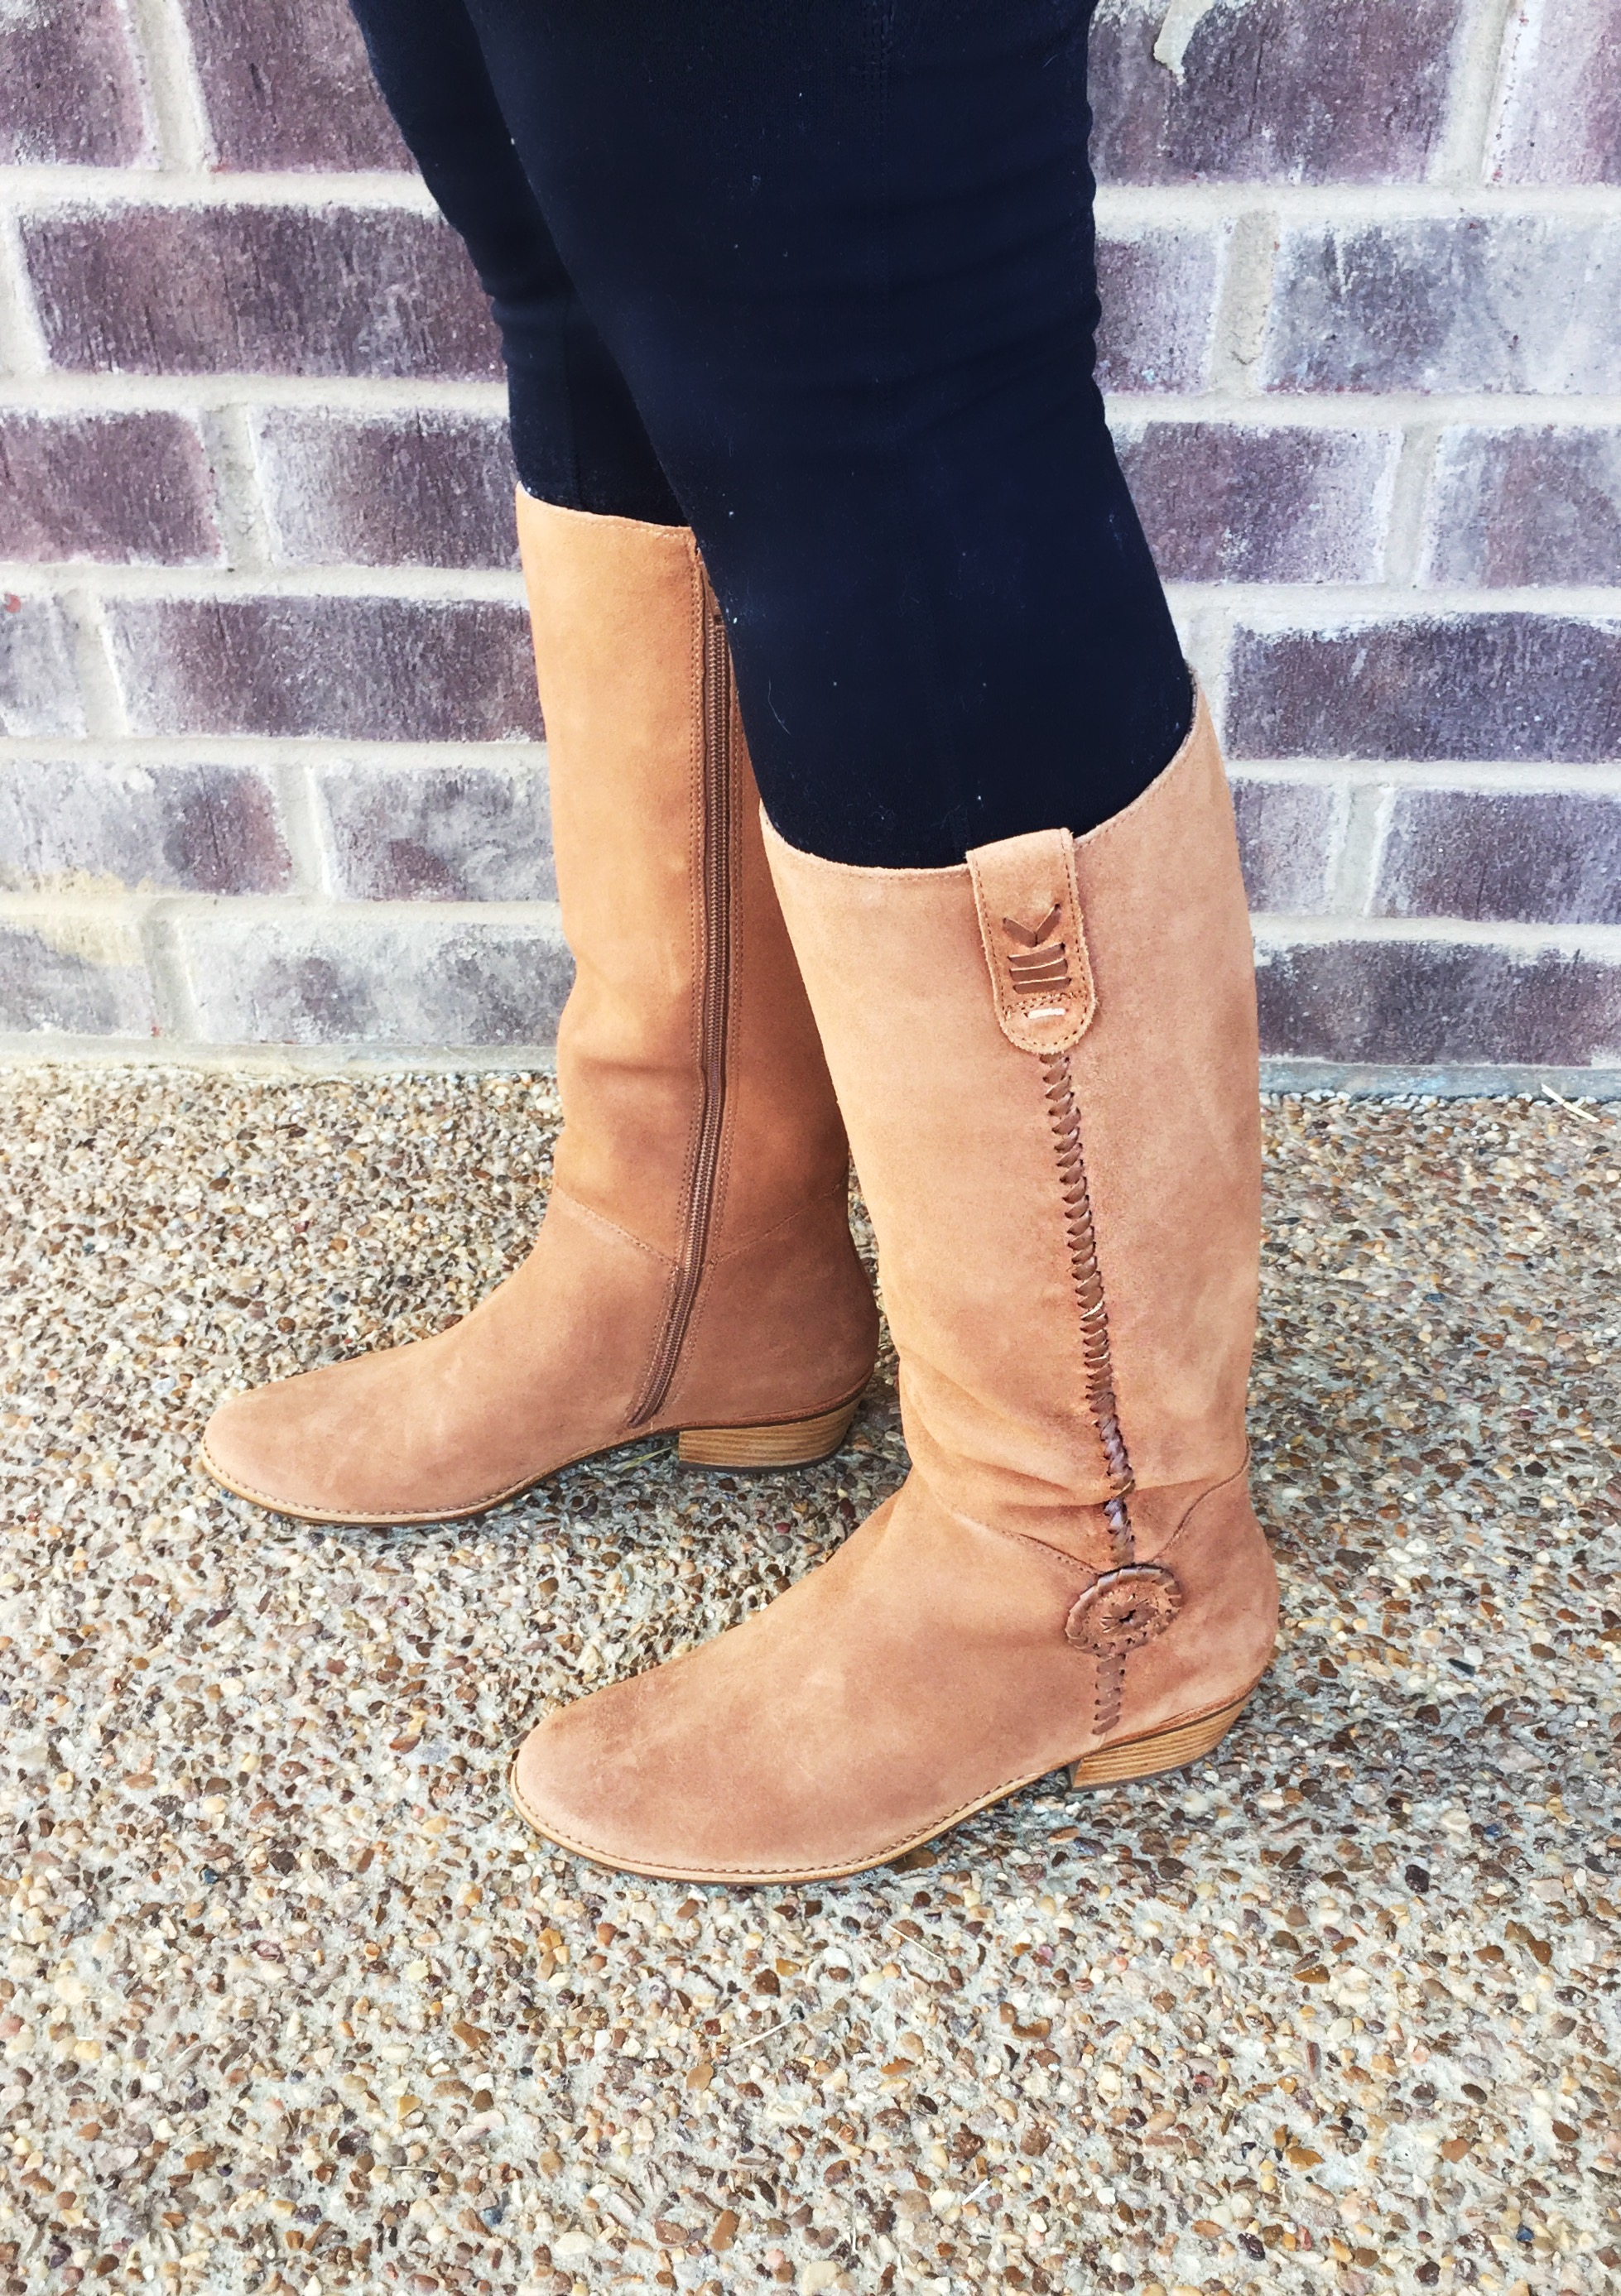 Sawyer Suede Boots (marked down from $198 to $99.99!)